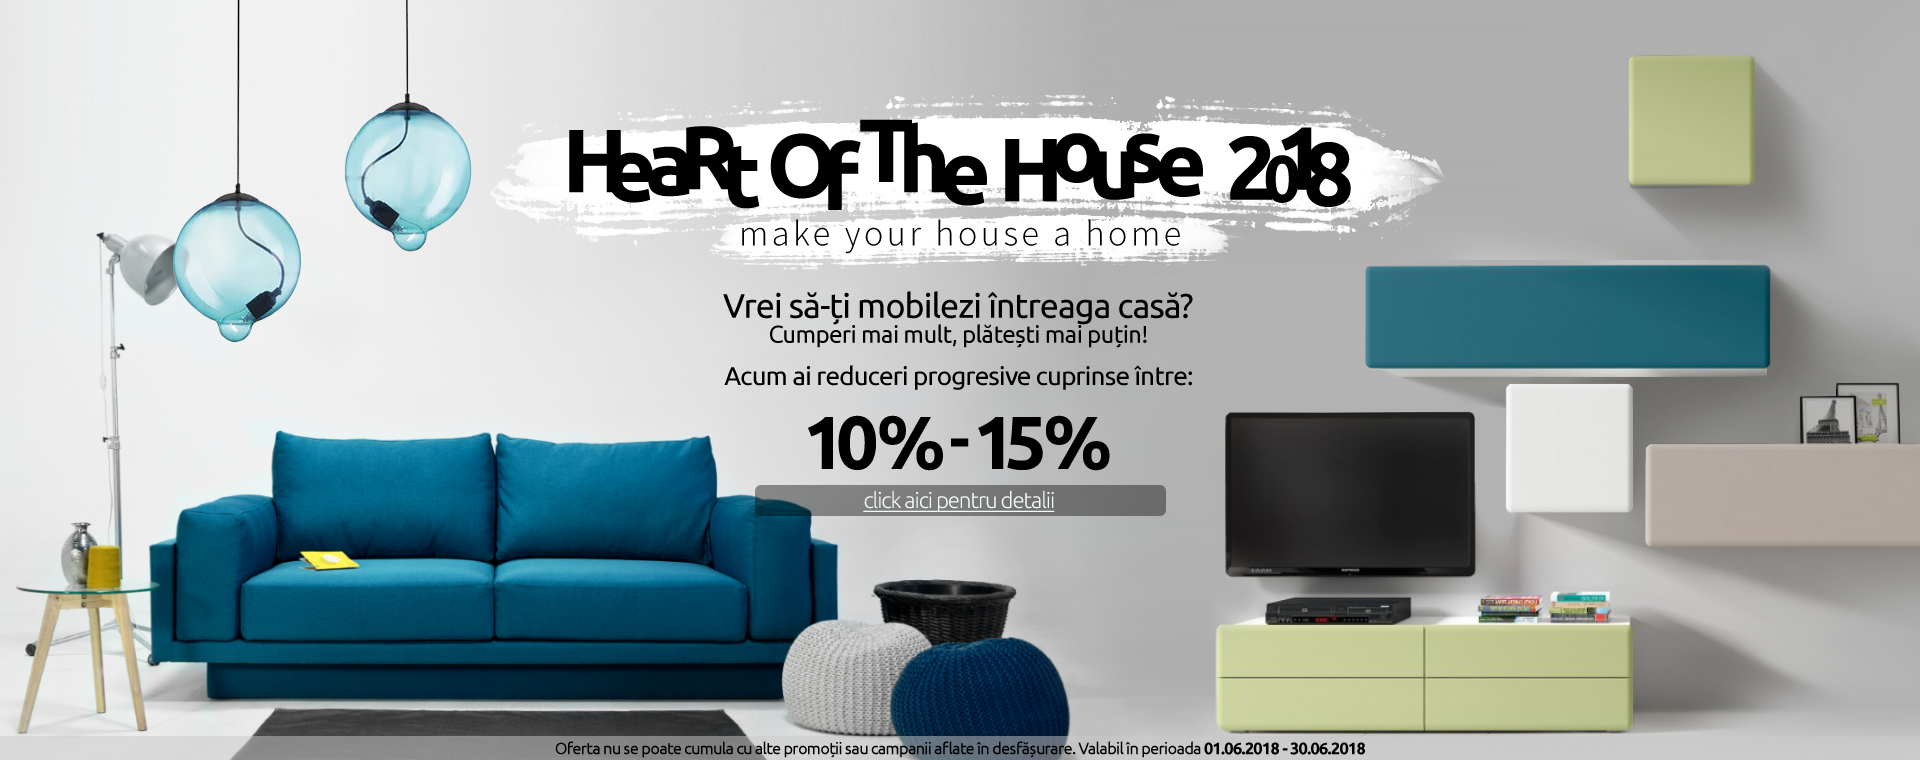 Heart of the House 2018